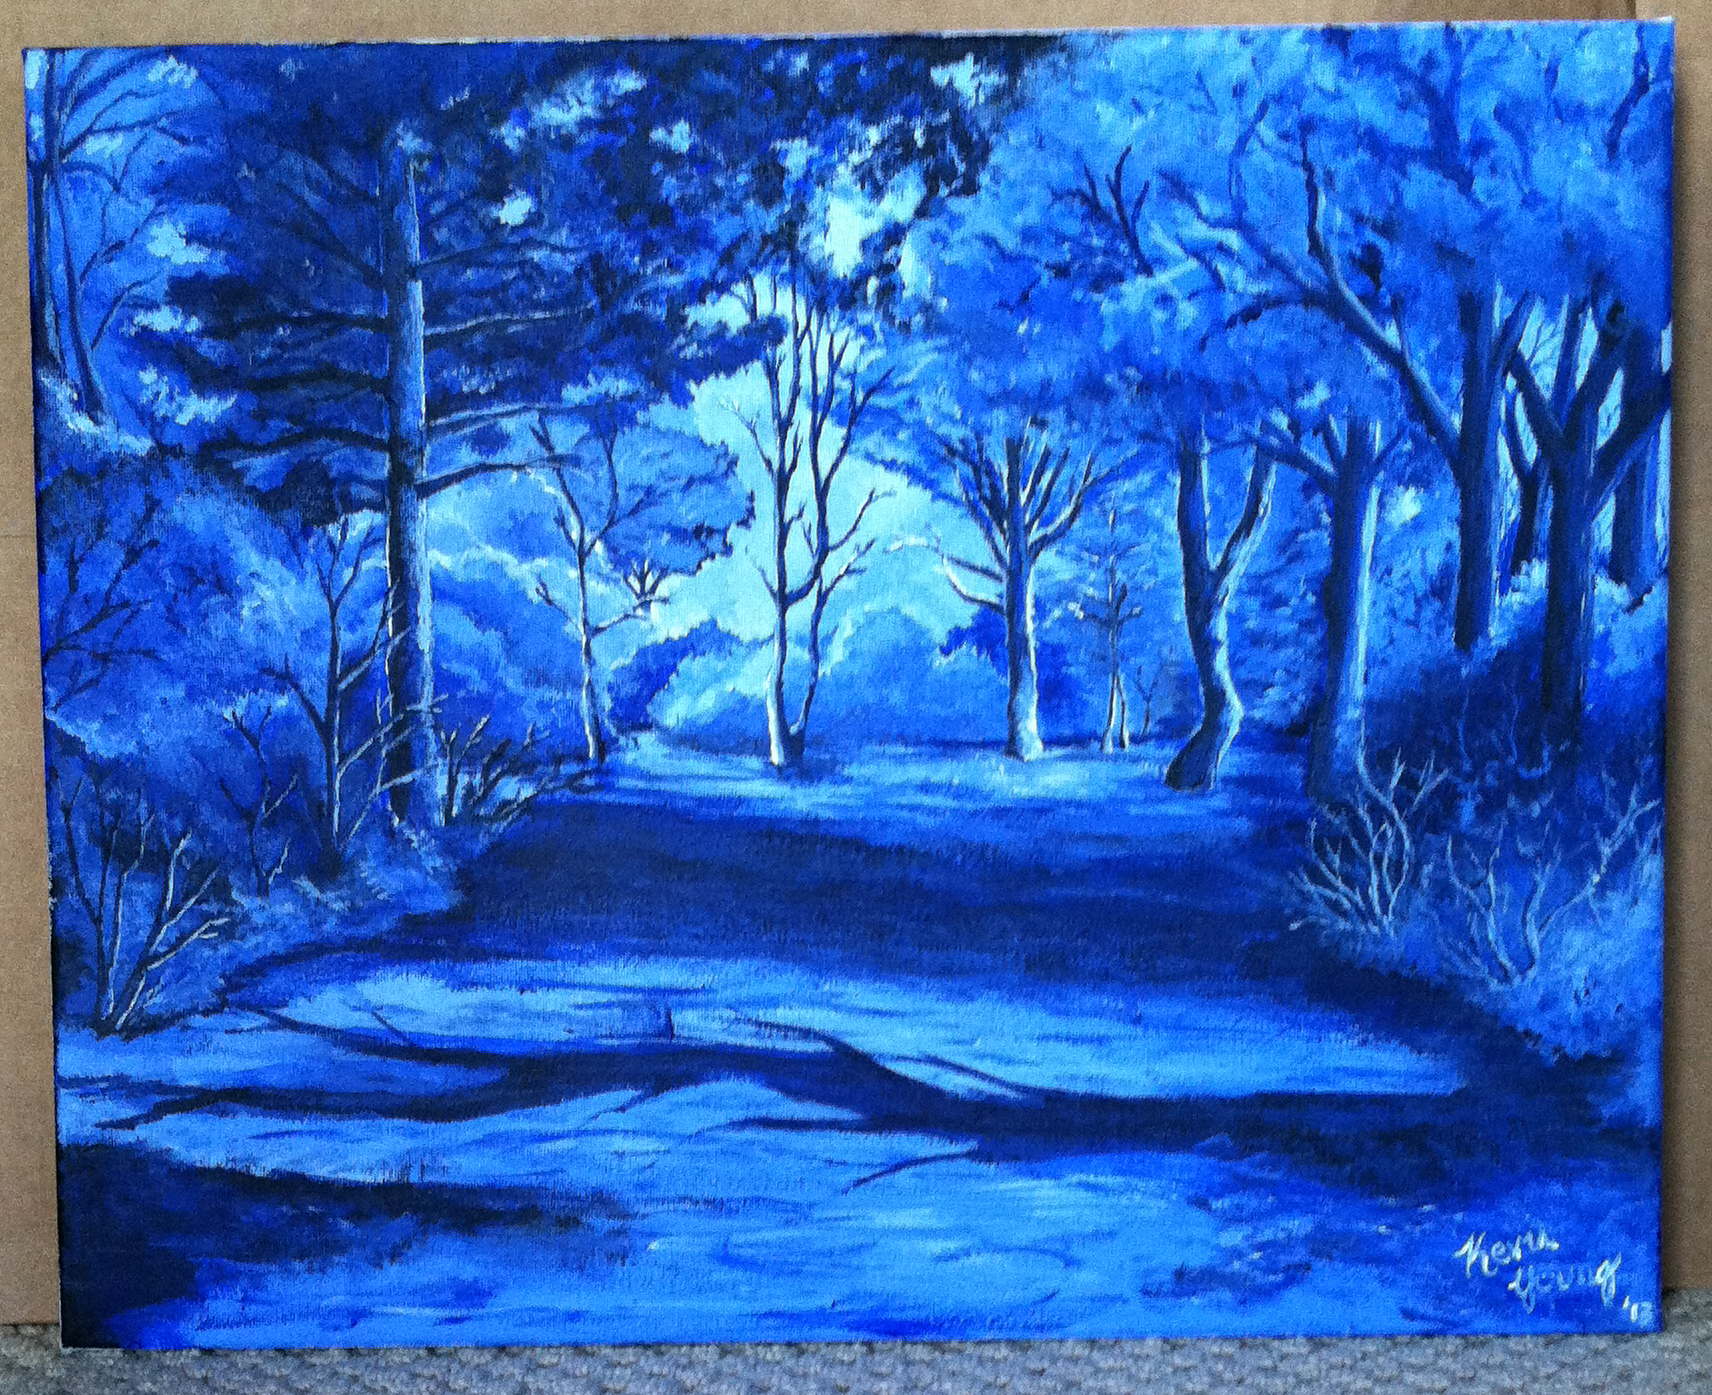 Blue monochrome landscape by kyoung720 on deviantart for Blue paintings on canvas